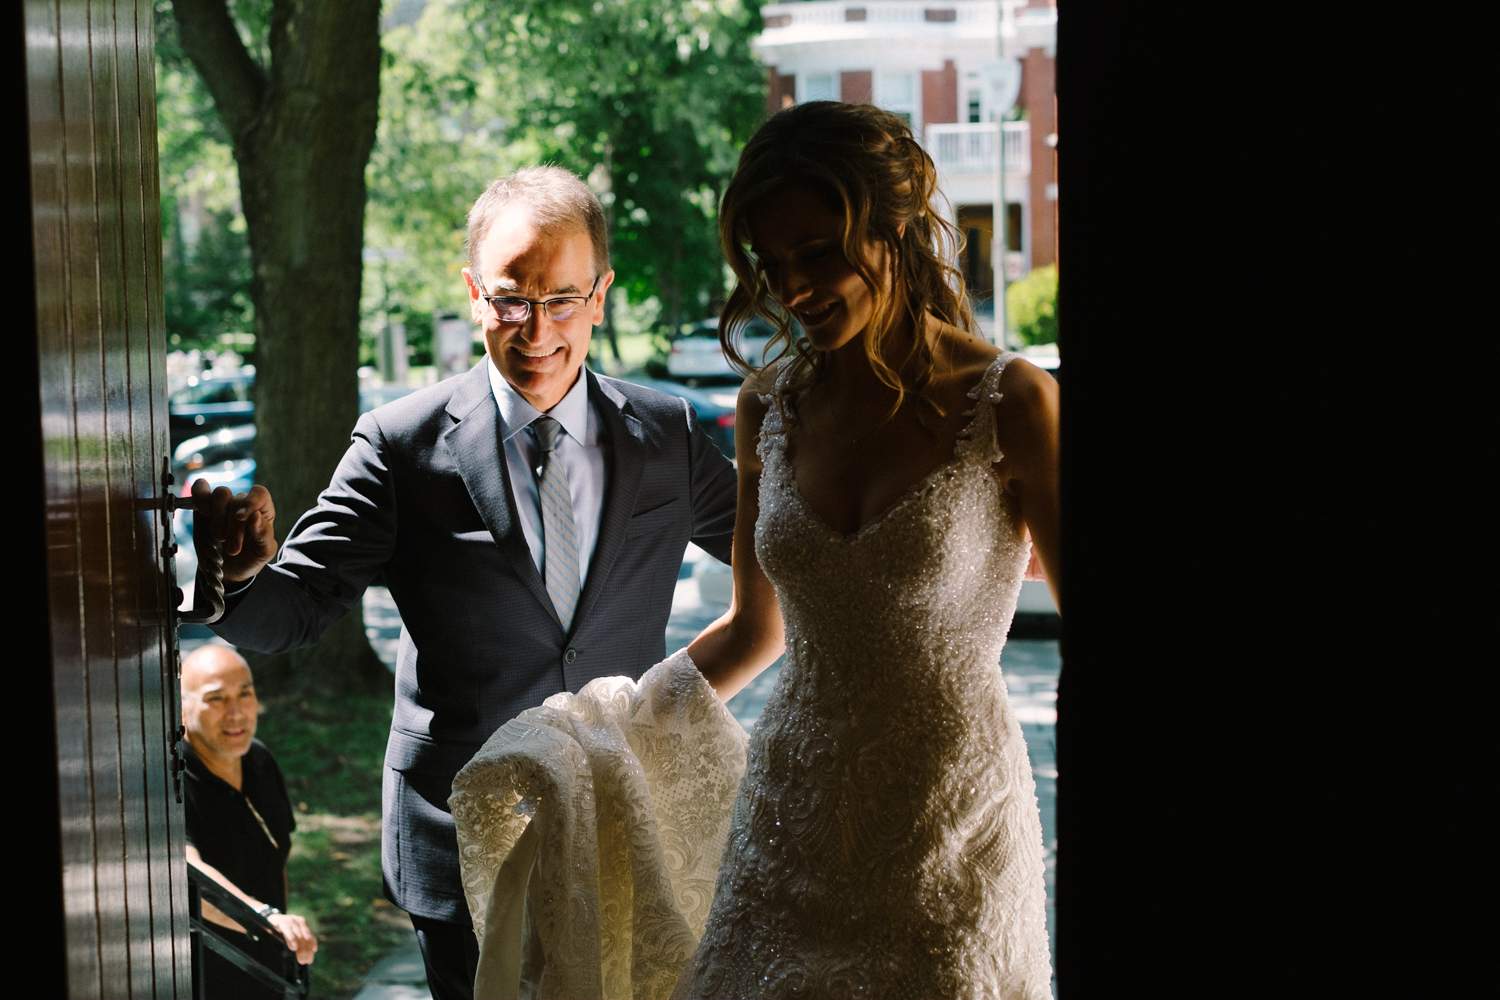 221Montreal Wedding Photographer.jpg